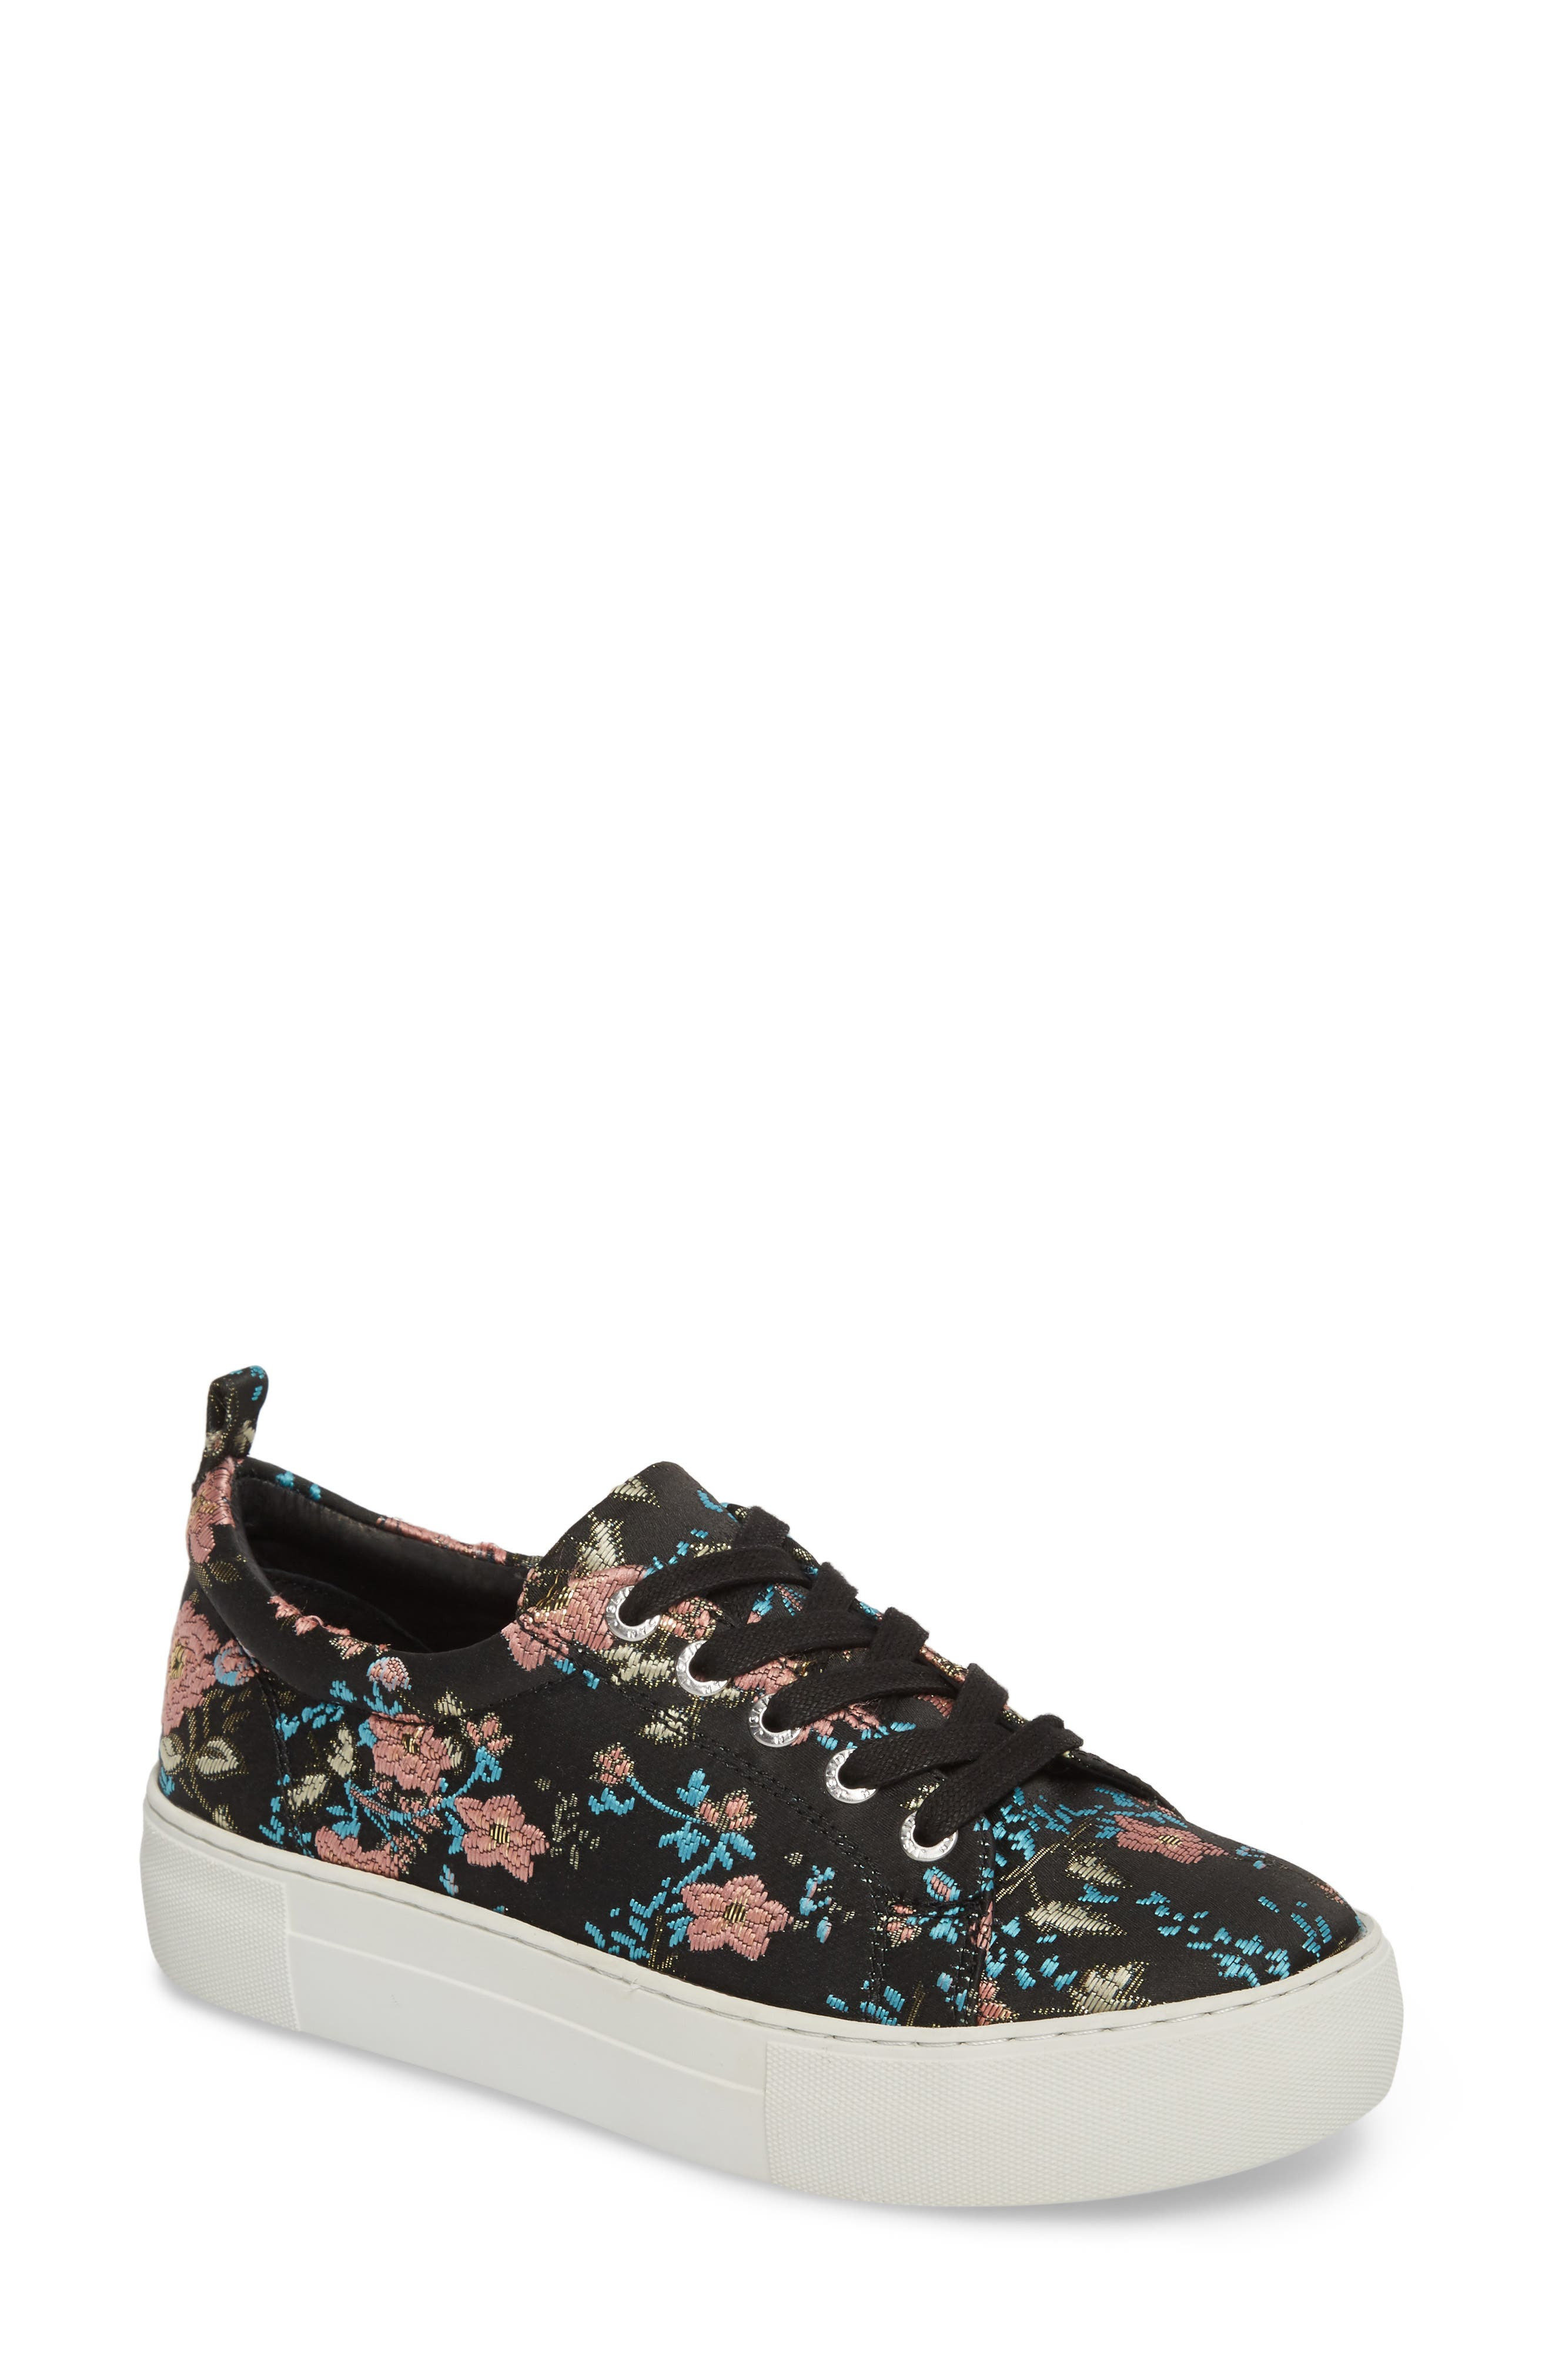 Assure Embroidered Platform Sneaker,                             Main thumbnail 1, color,                             Black Printed Fabric